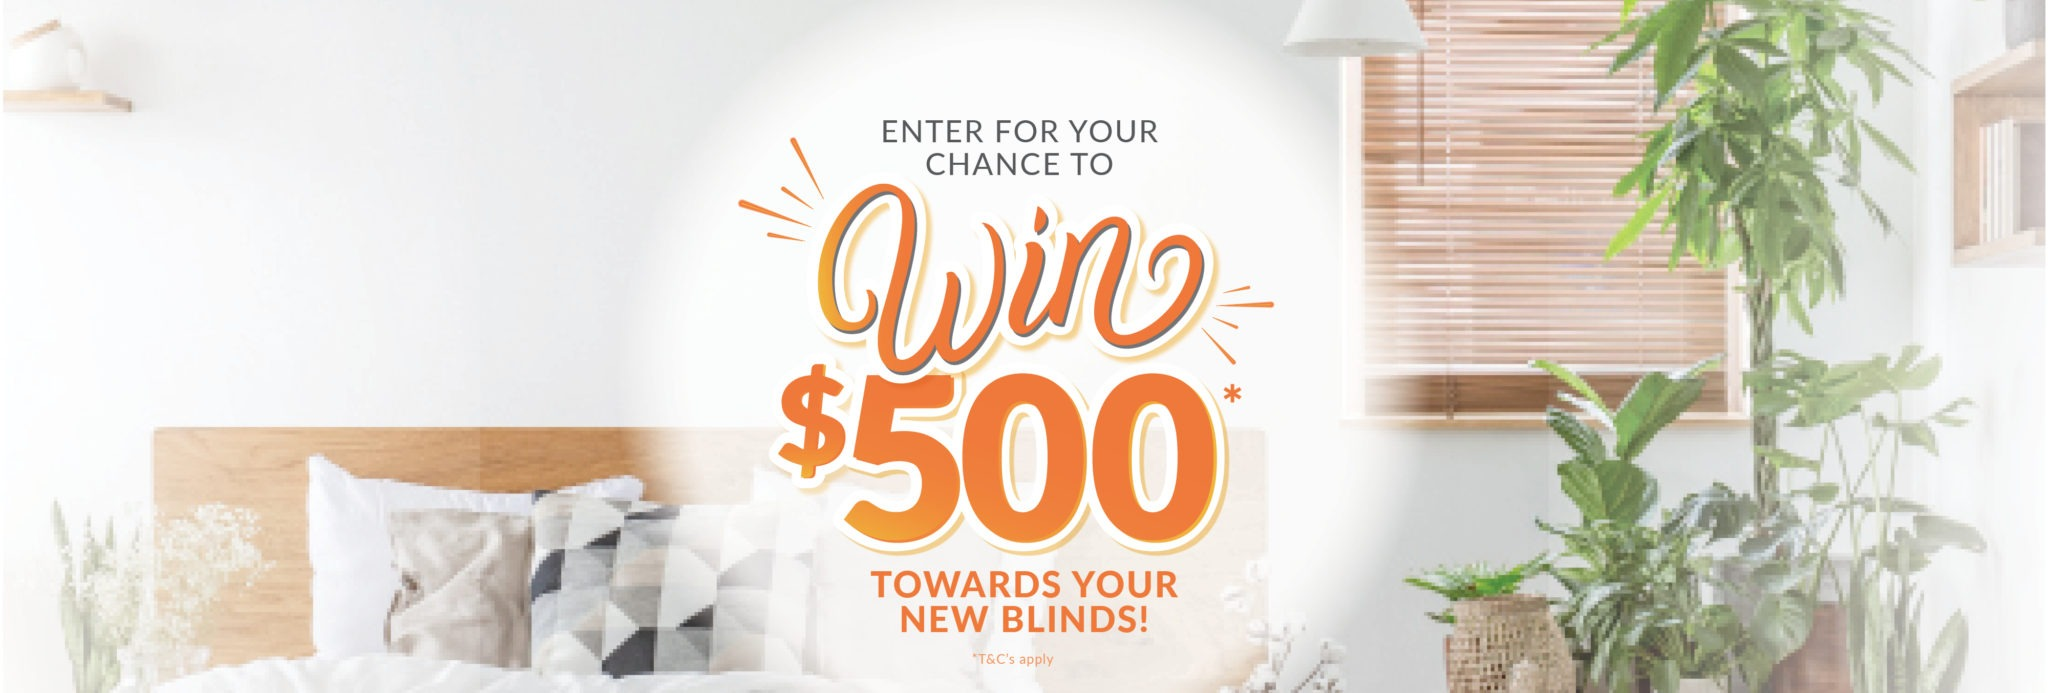 Win $500 towards your new blinds